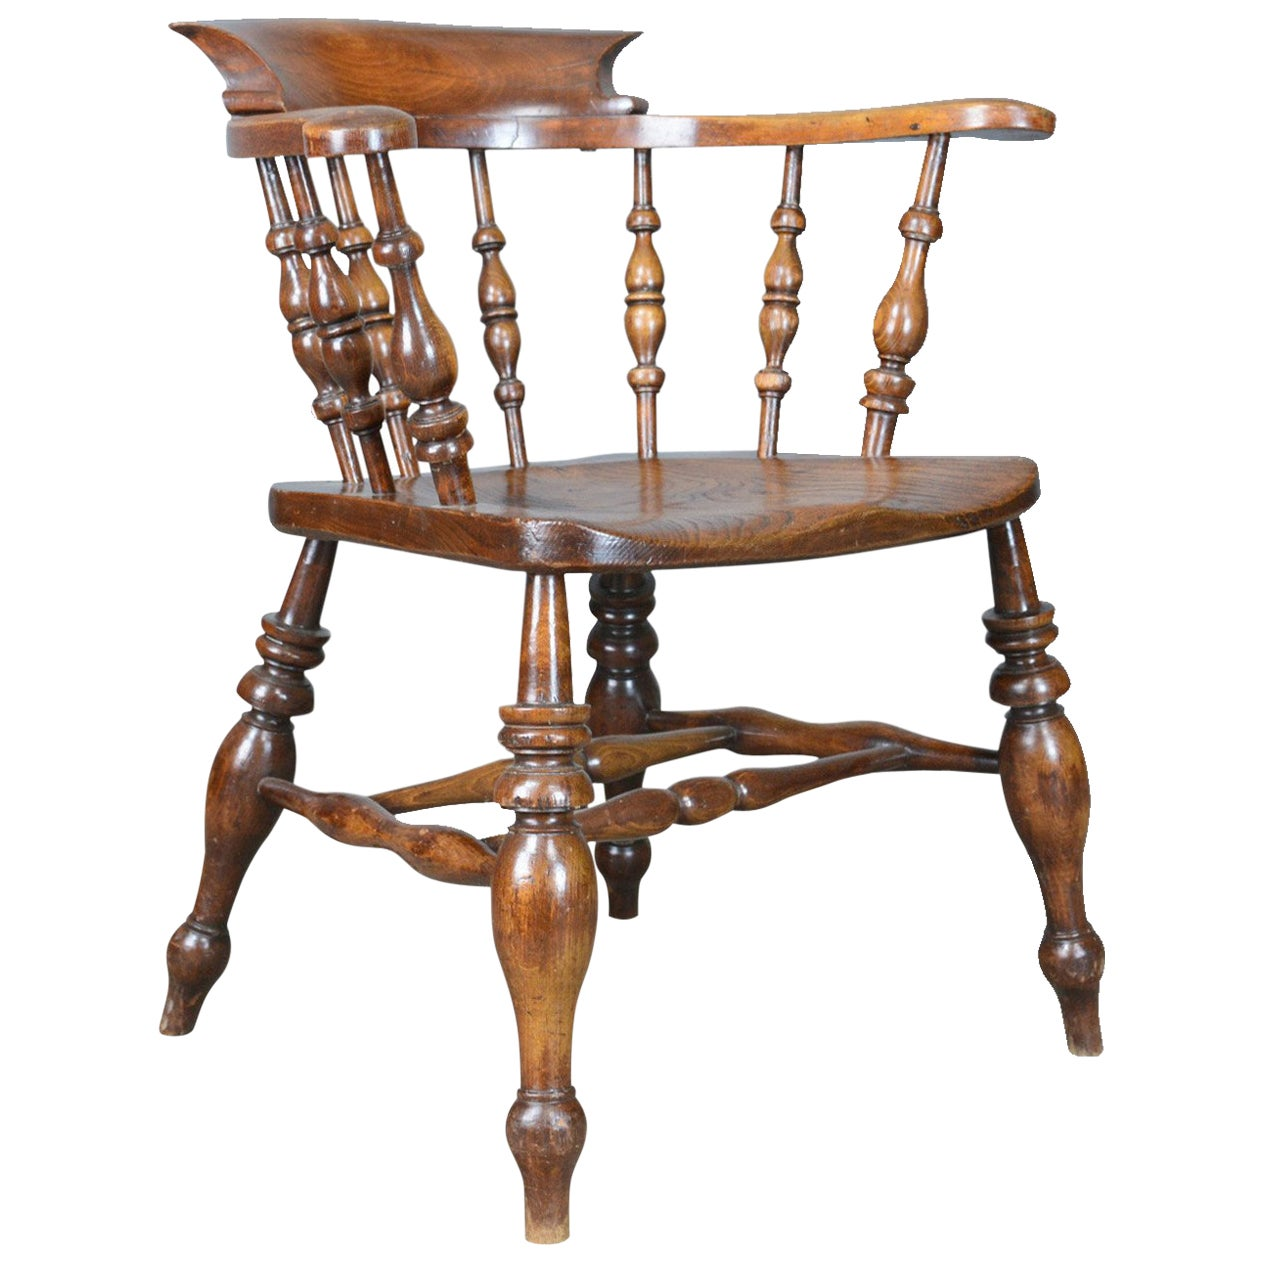 Antique Bow Chair, Smokers Captains English Victorian Elm Windsor, circa 1870